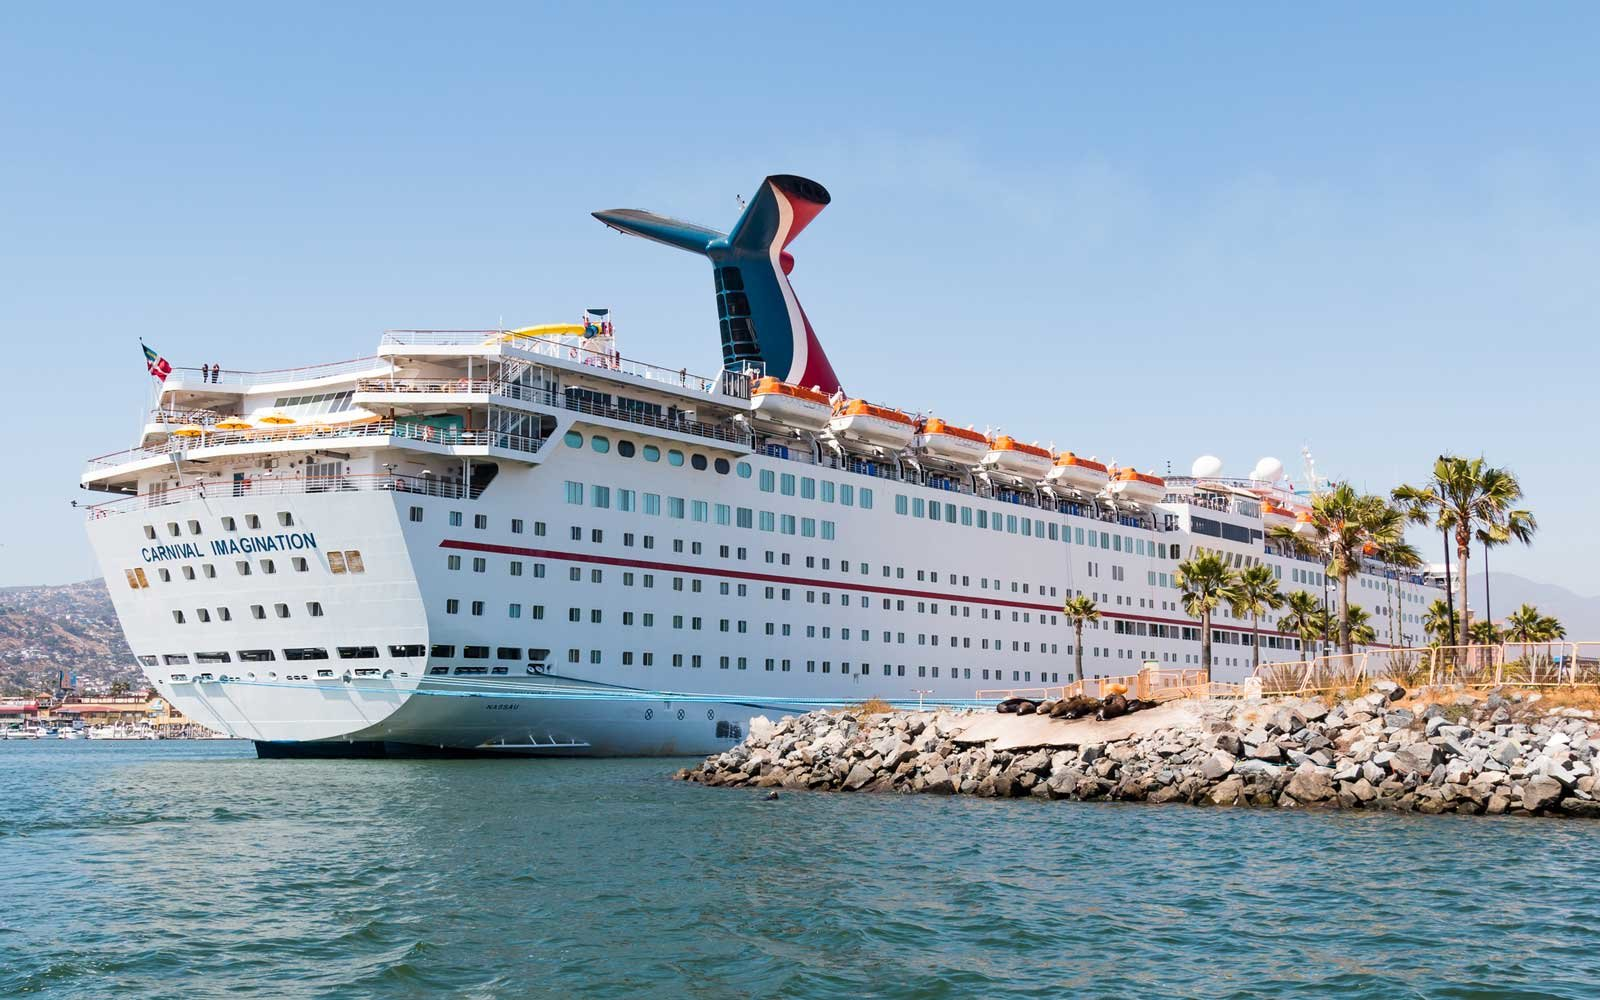 Carnival Cruise Ship Imagination in port